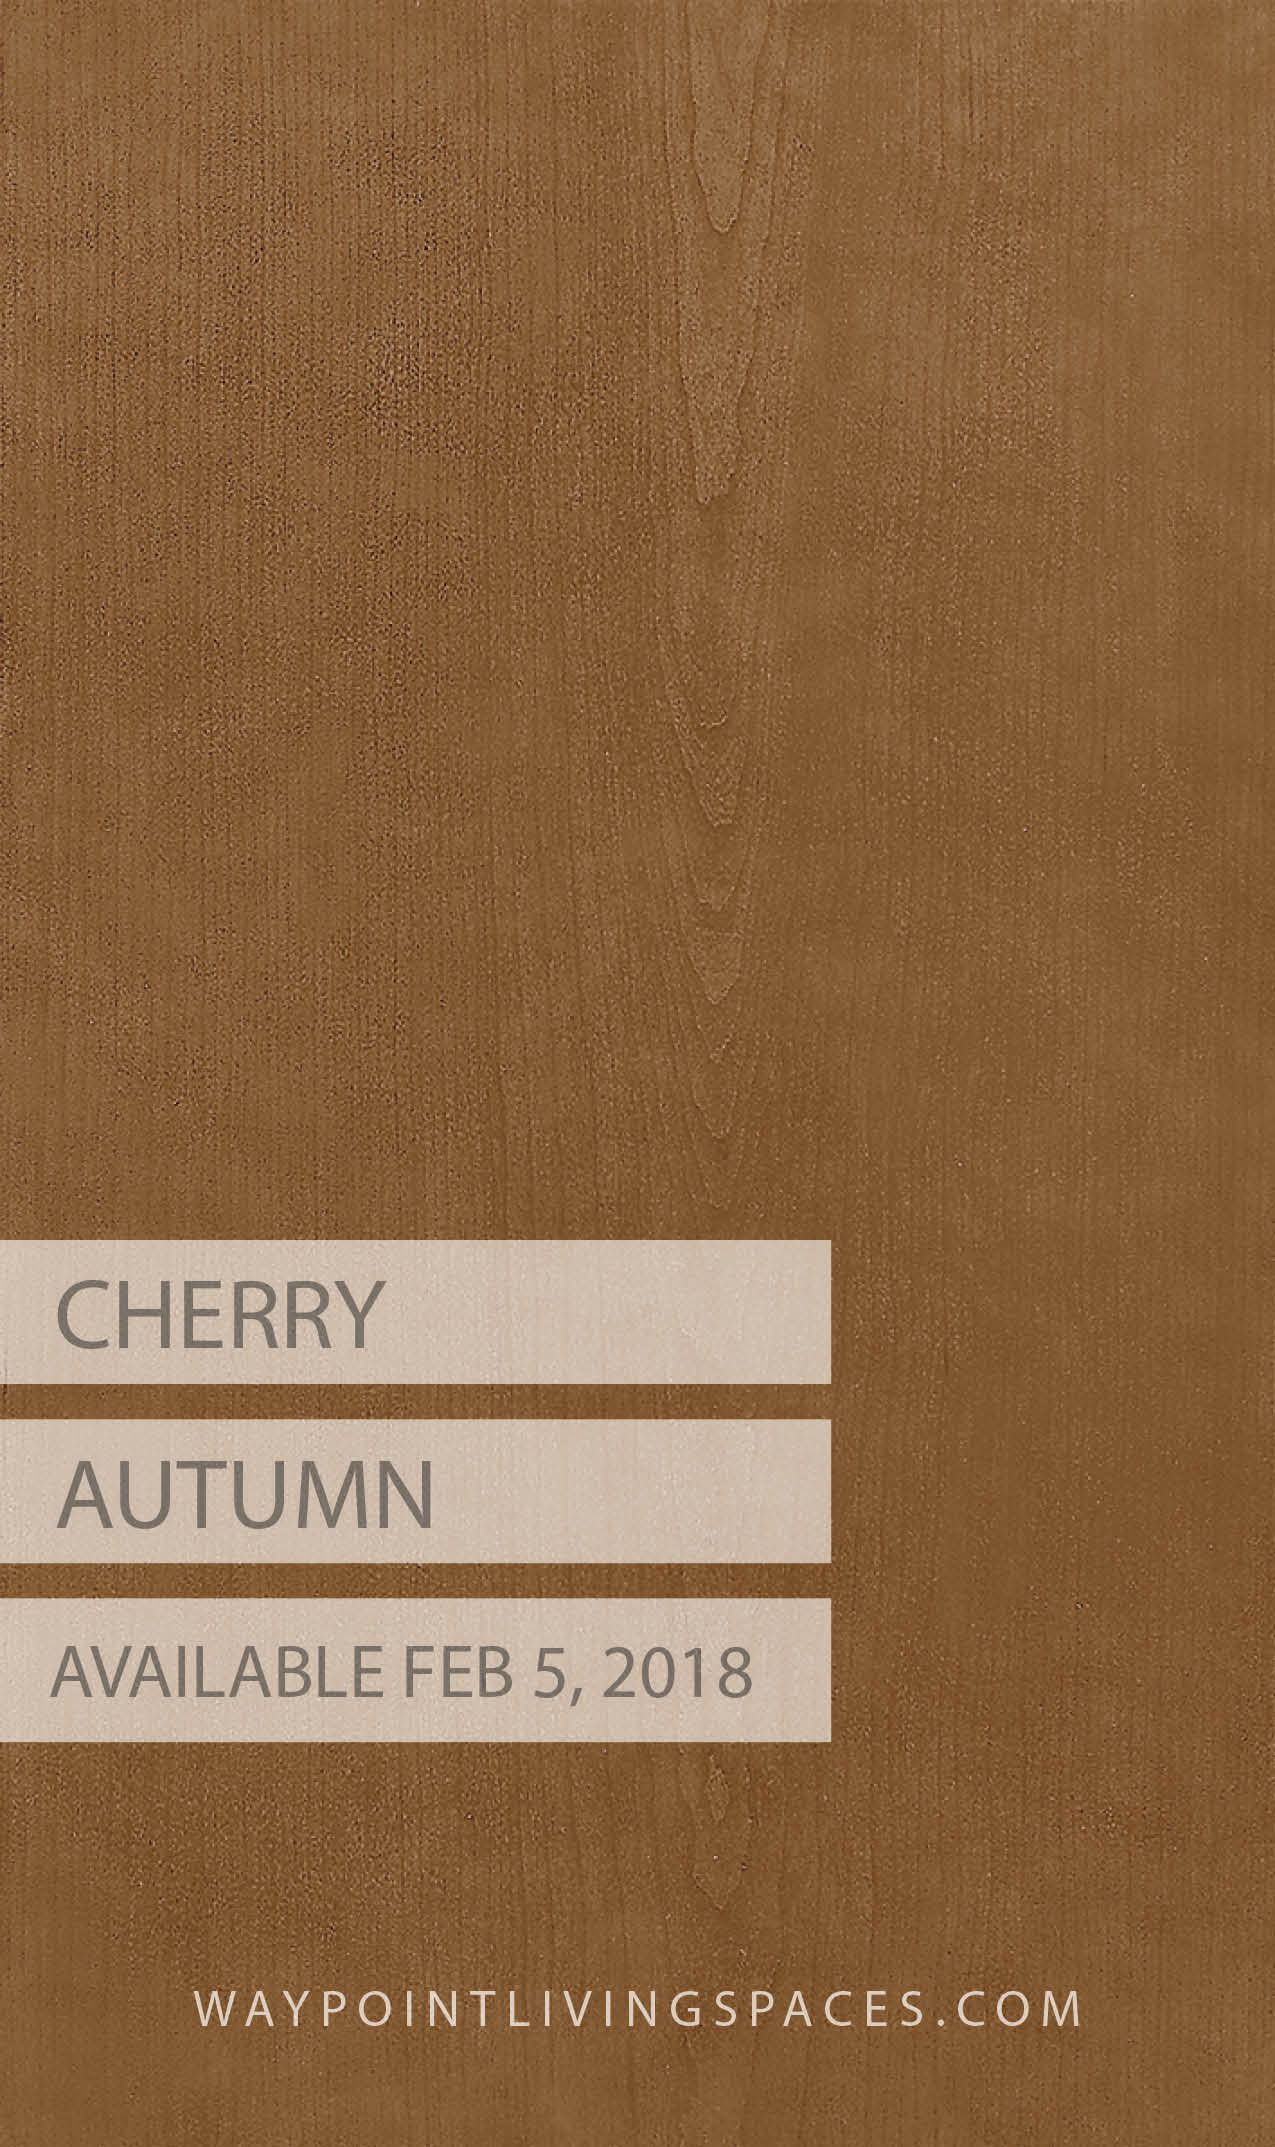 Cherry Autumn A New Cabinet Finish From Waypoint Living Es Available February 5 2018